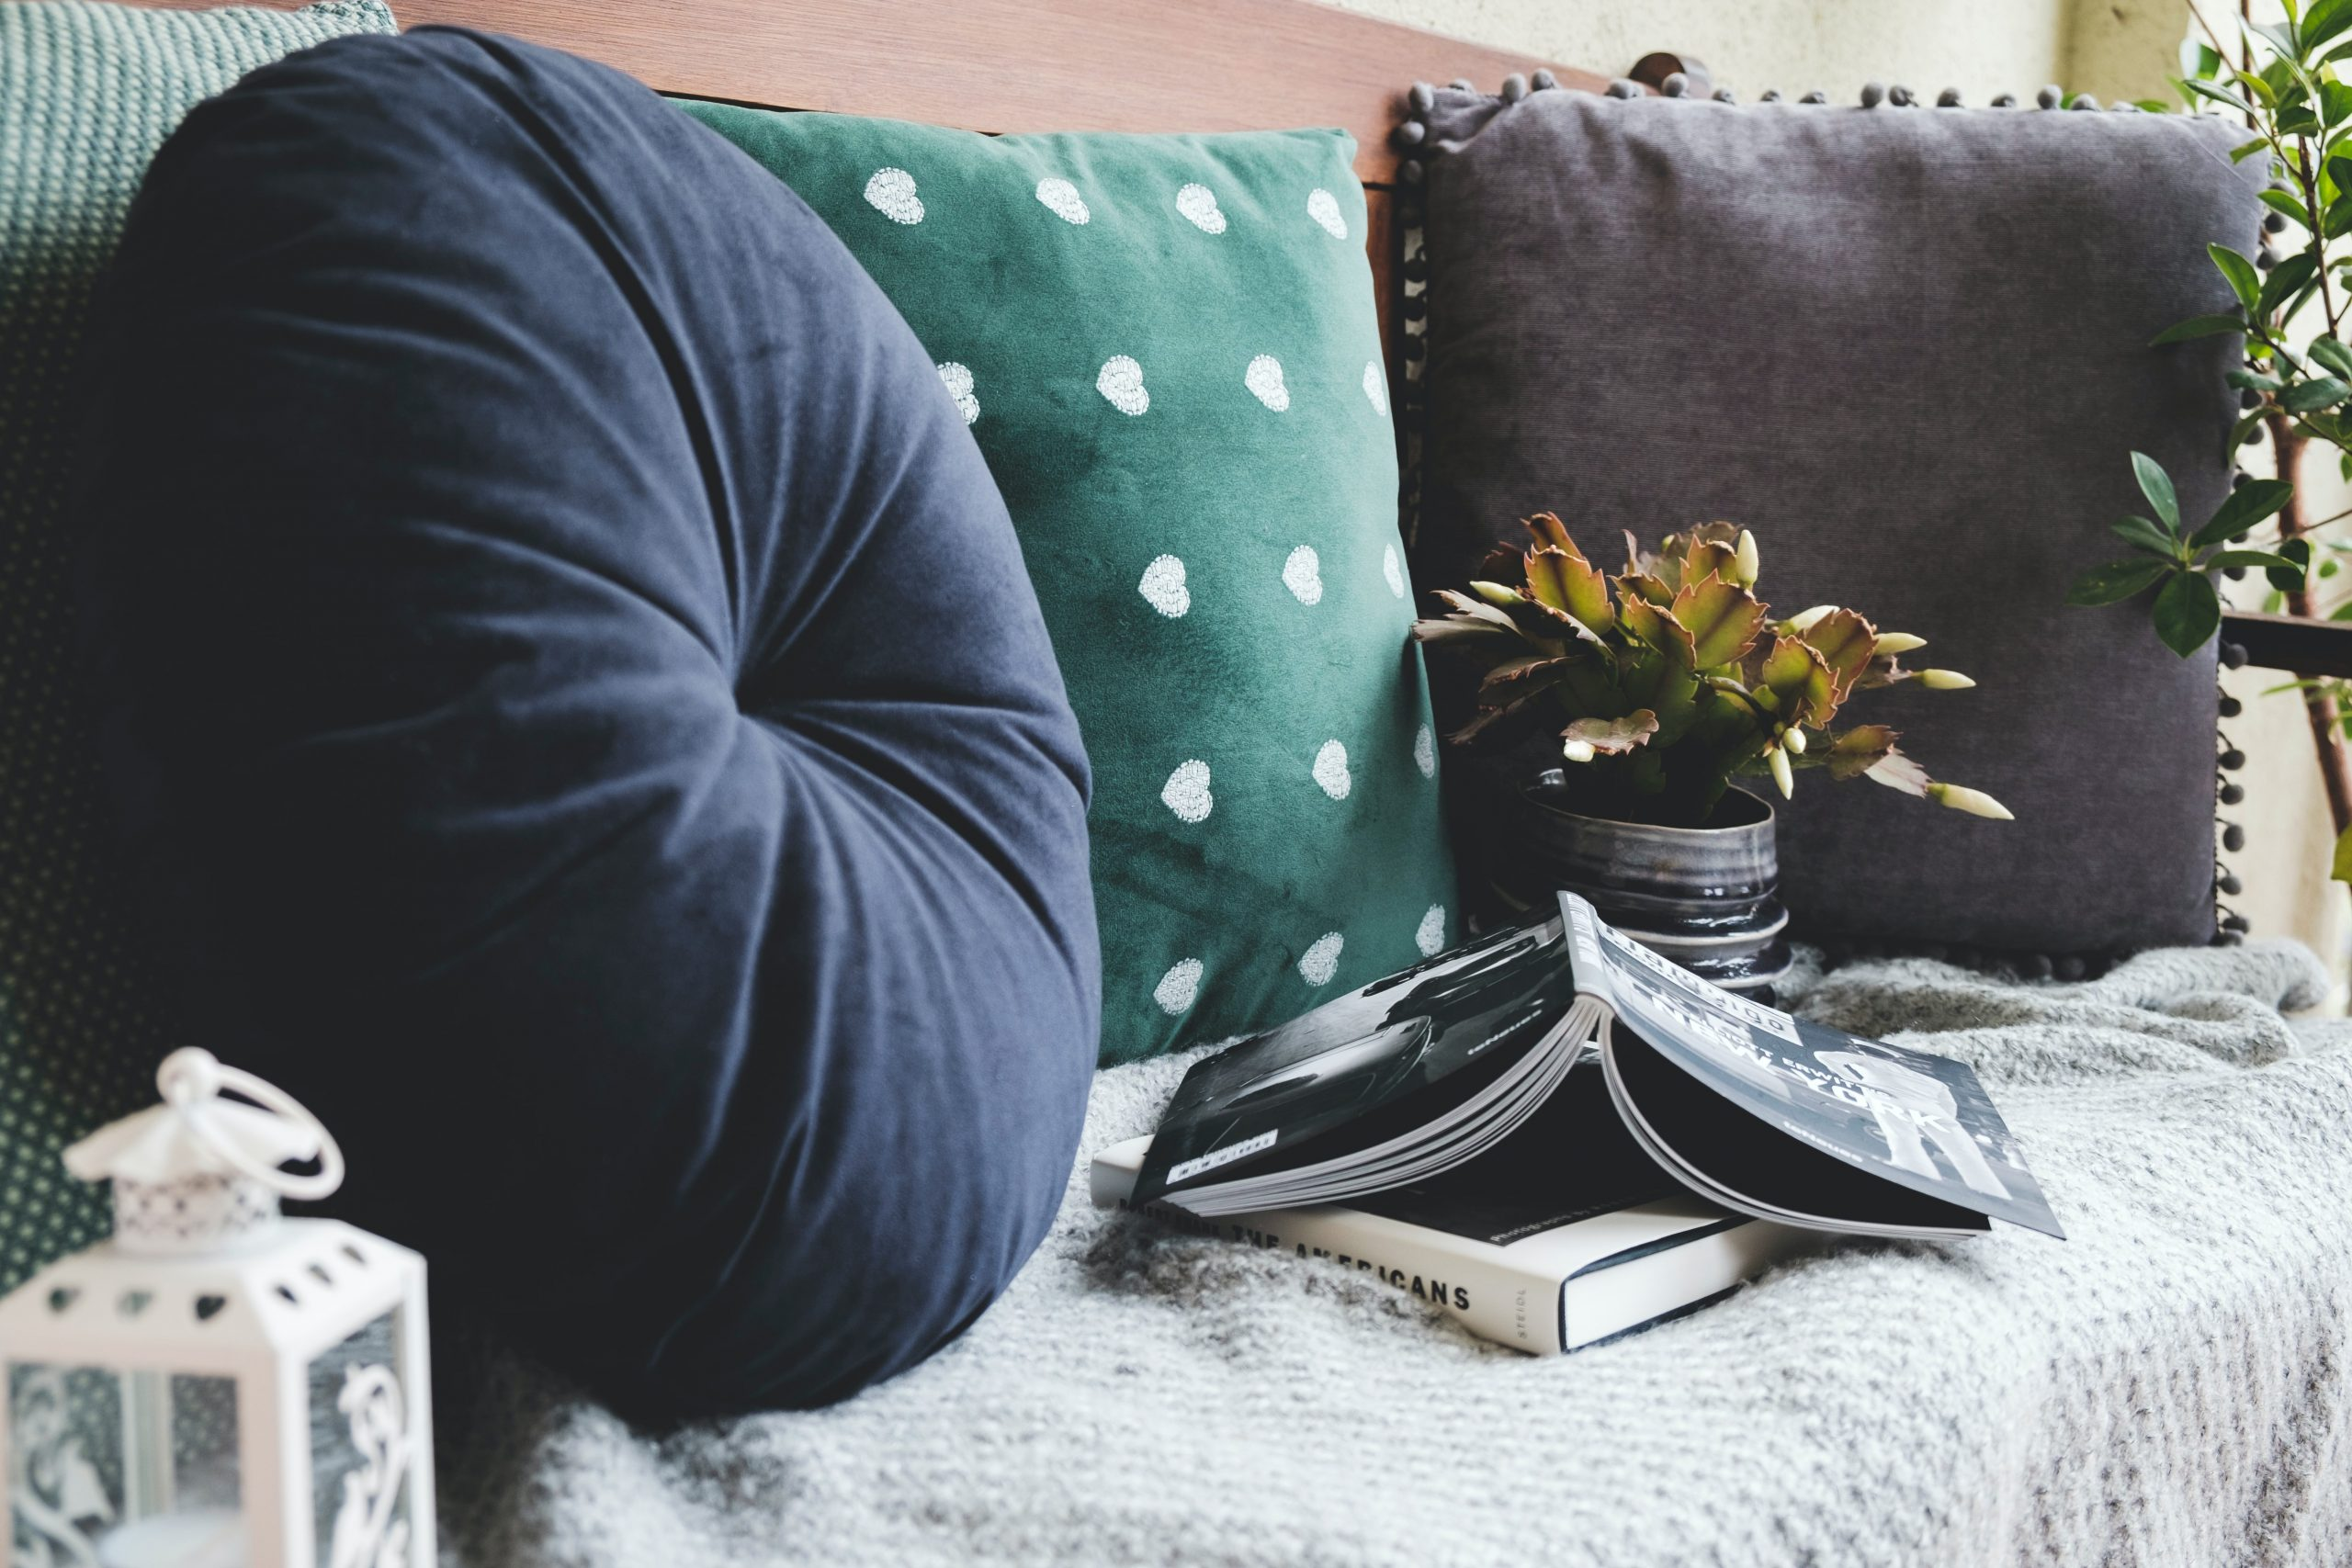 Five Tips to Make Your Home Cozier This Winter